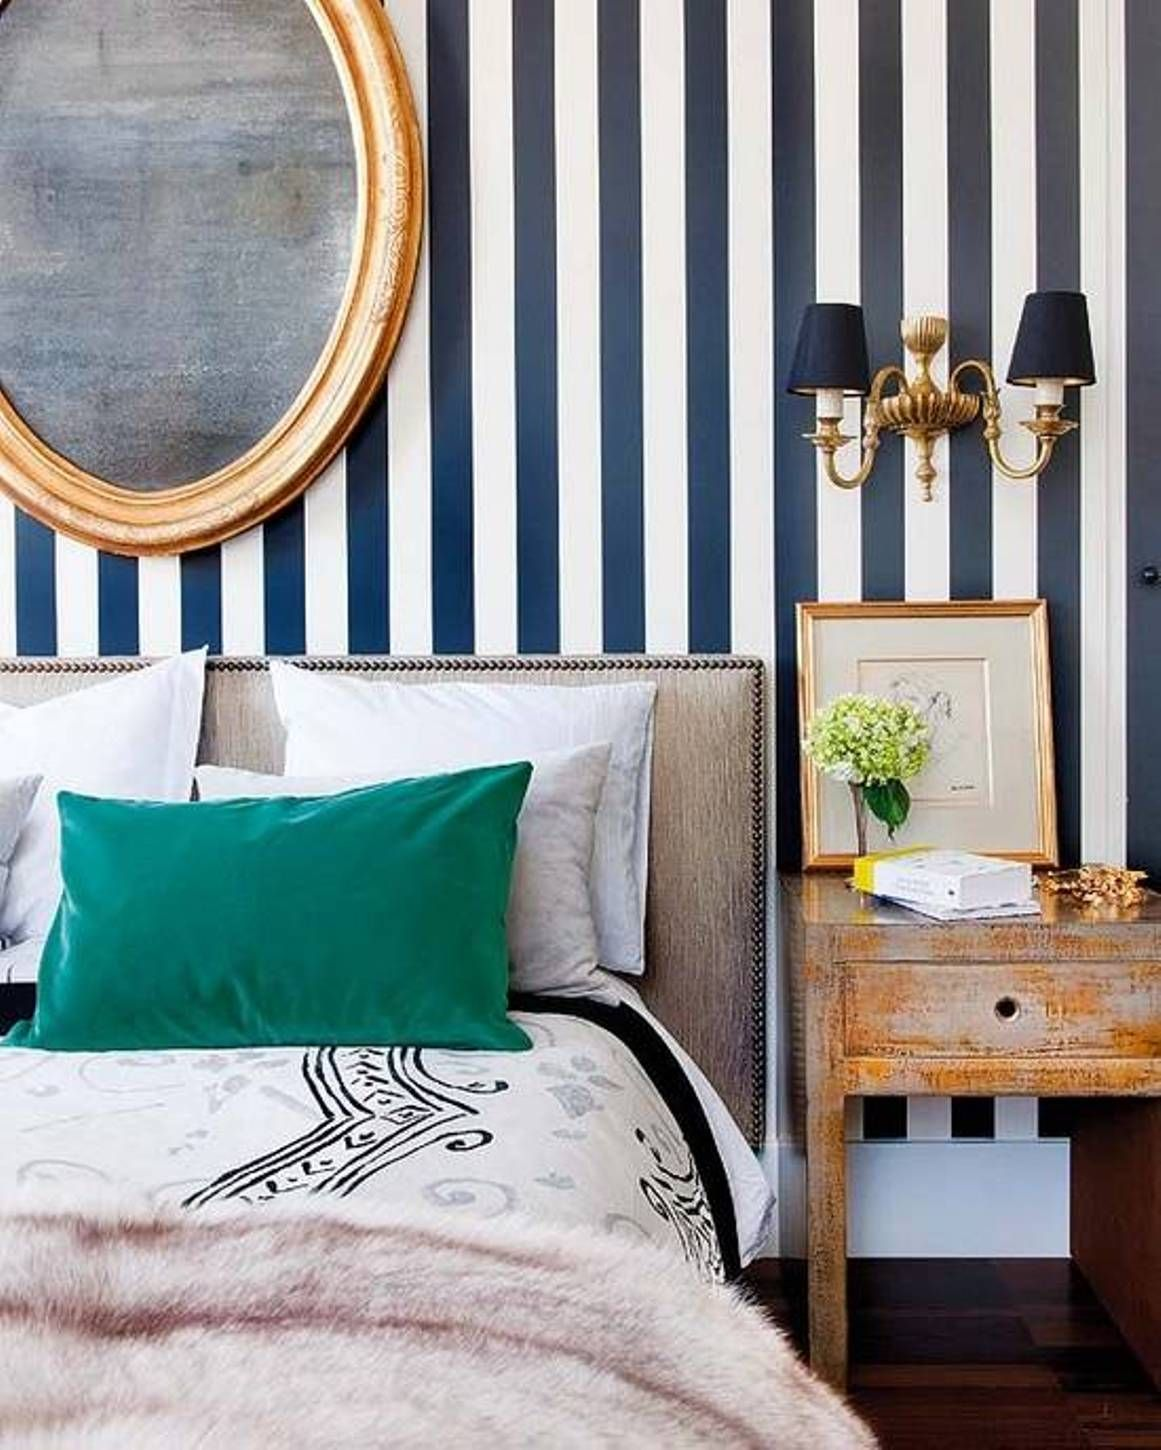 Best Image Result For Black And White Striped Wallpaper Bedroom 400 x 300